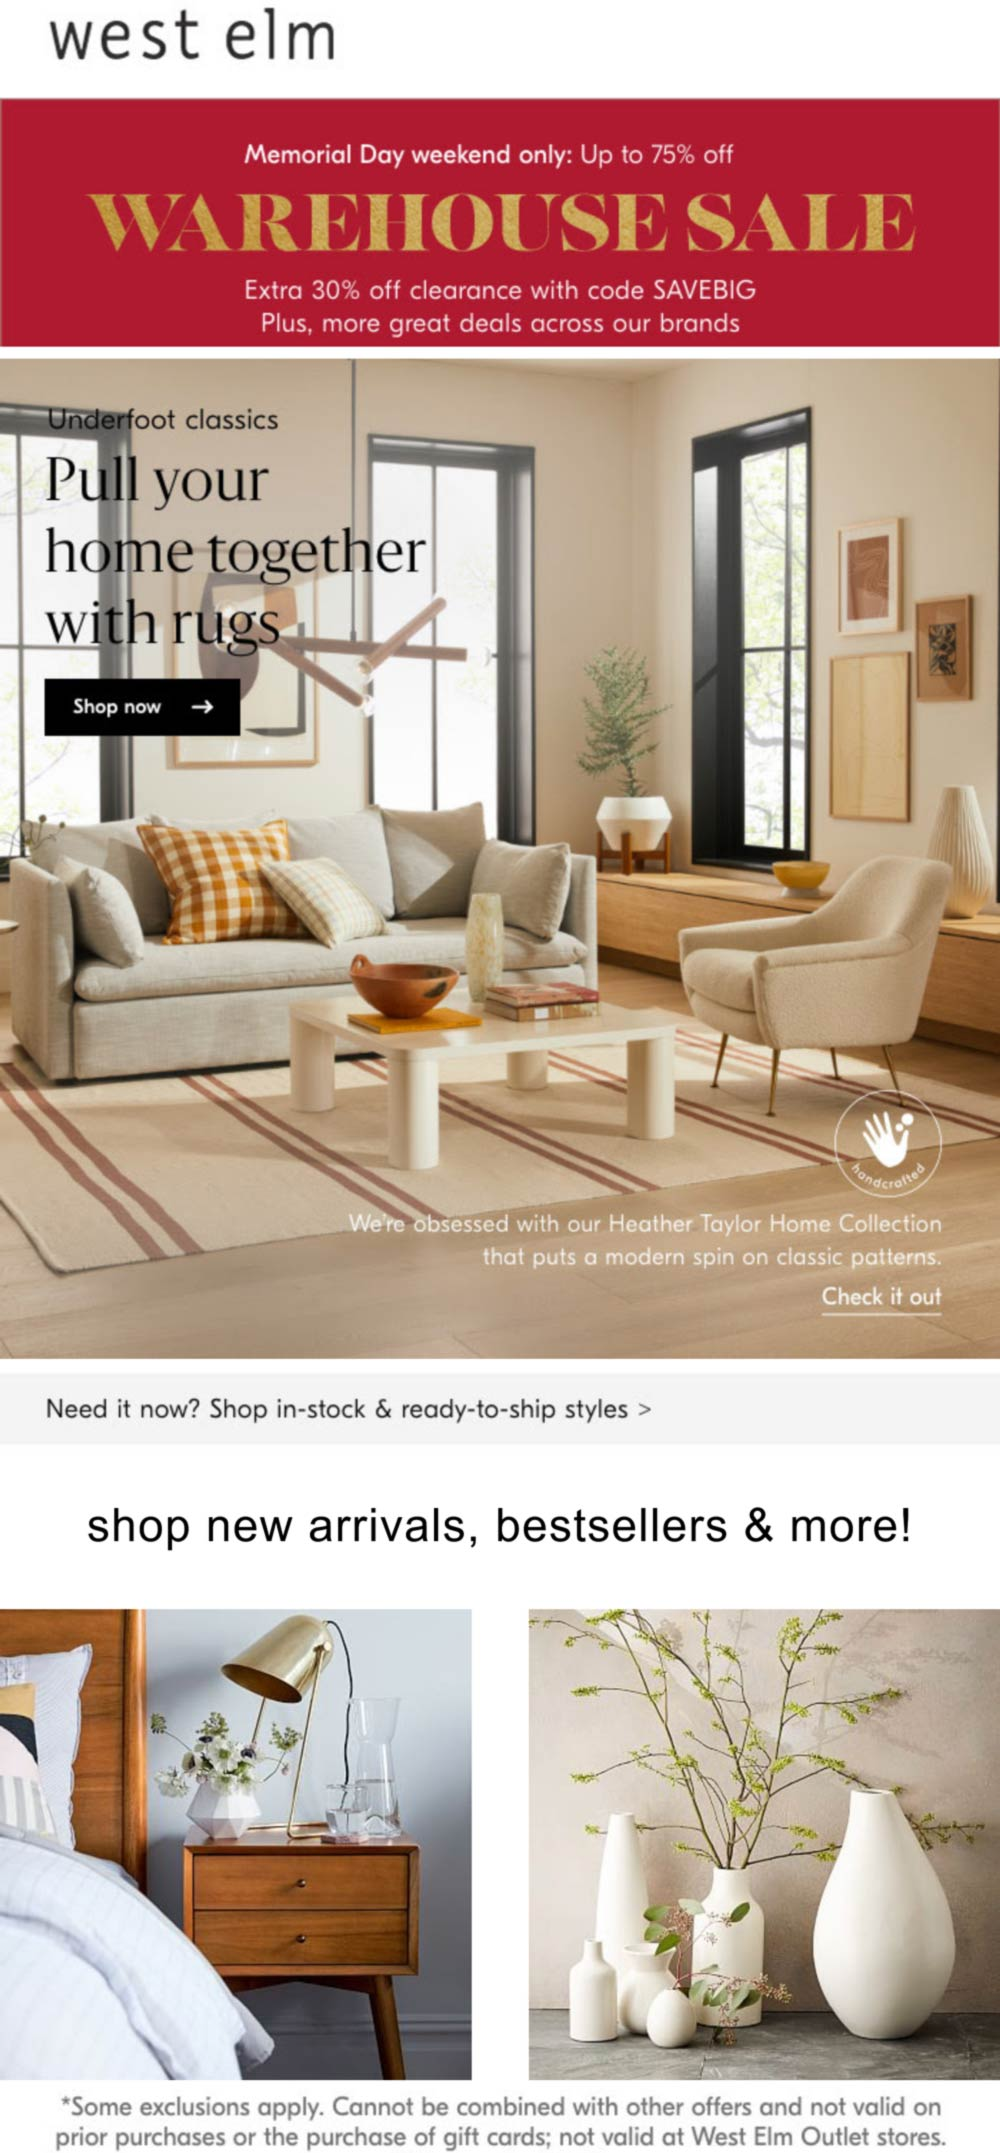 West Elm stores Coupon  Extra 30% off clearance today at West Elm furniture via promo code SAVEBIG #westelm